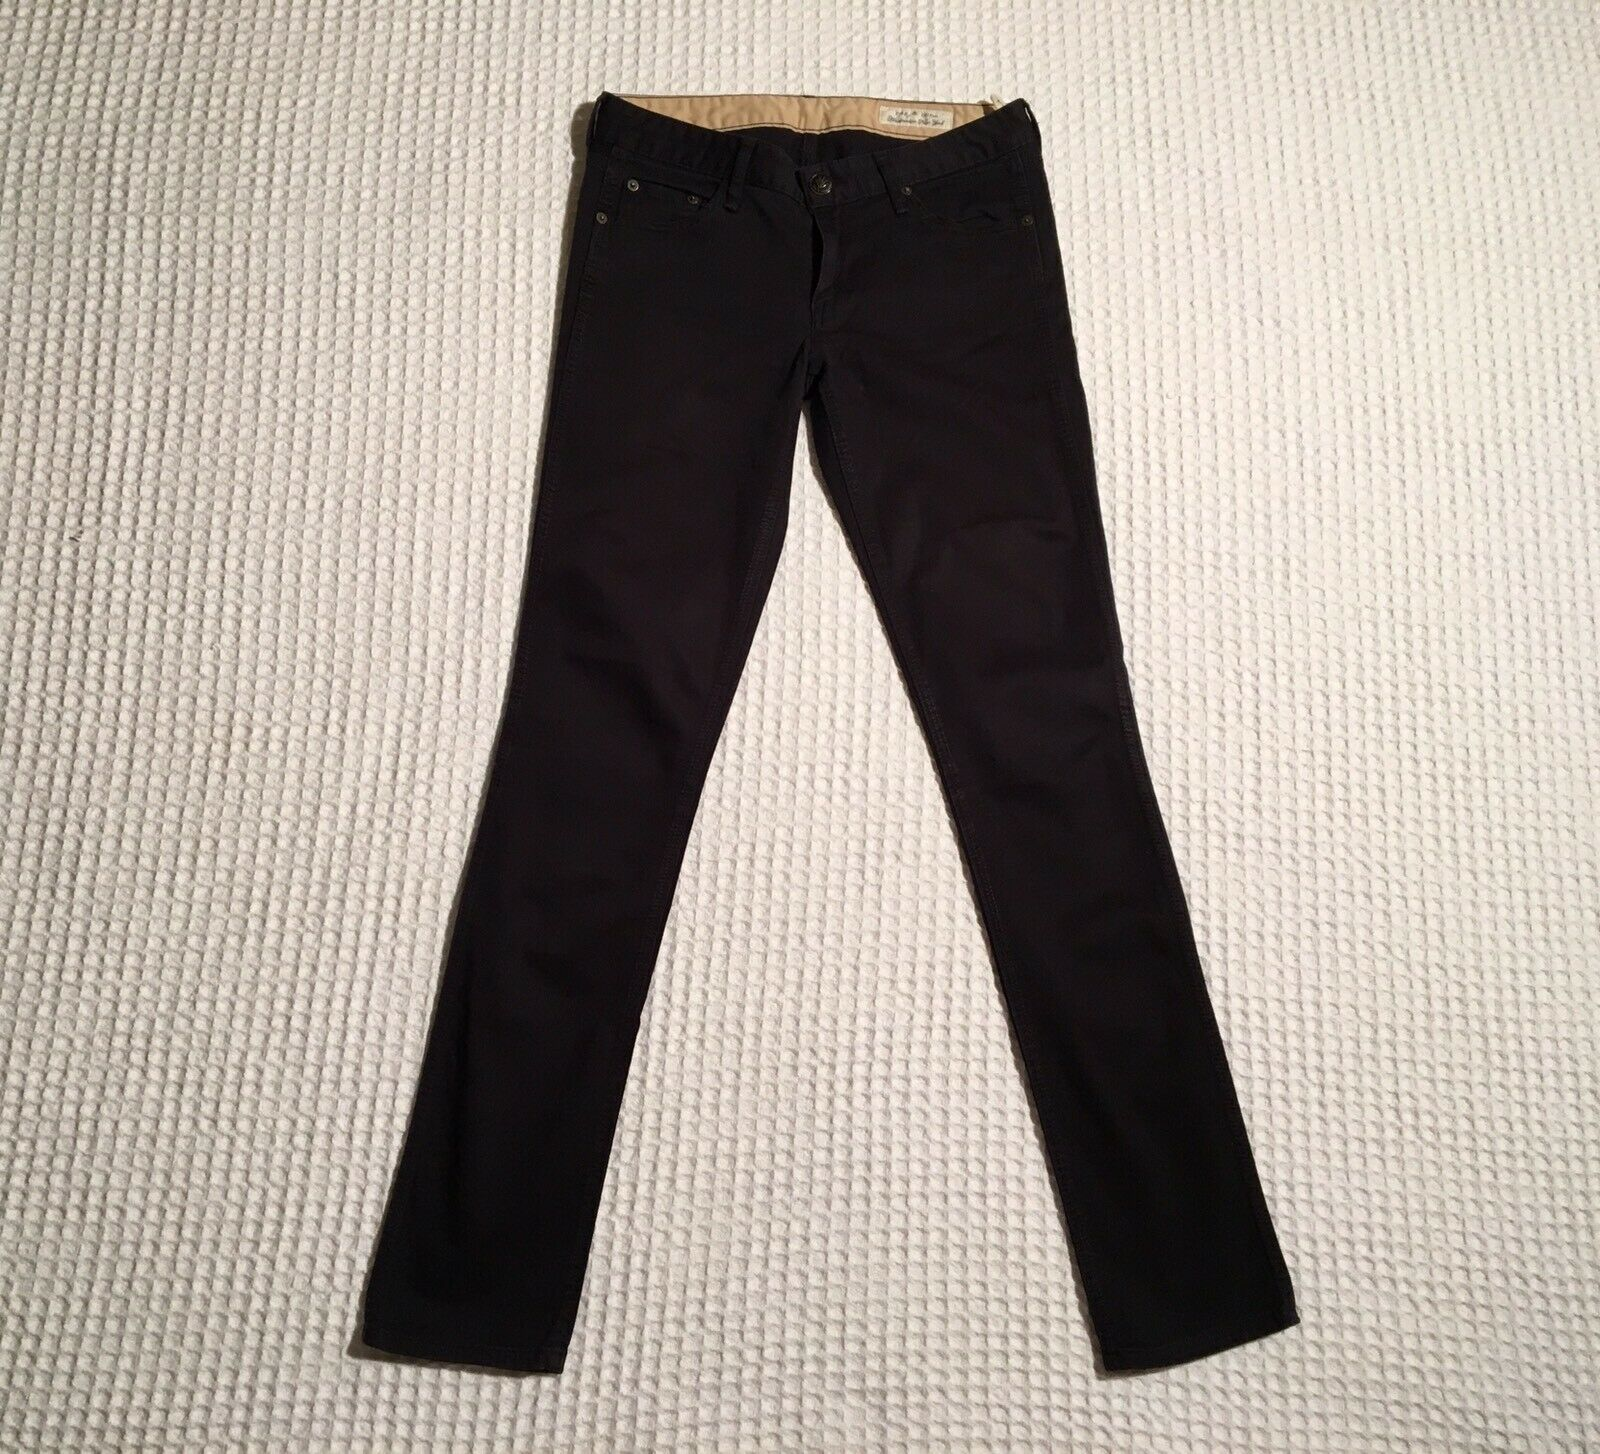 RAG & BONE Rag + Bone Slim Straight Leg Jeans Navy bluee Cotton Stretch Twill 28